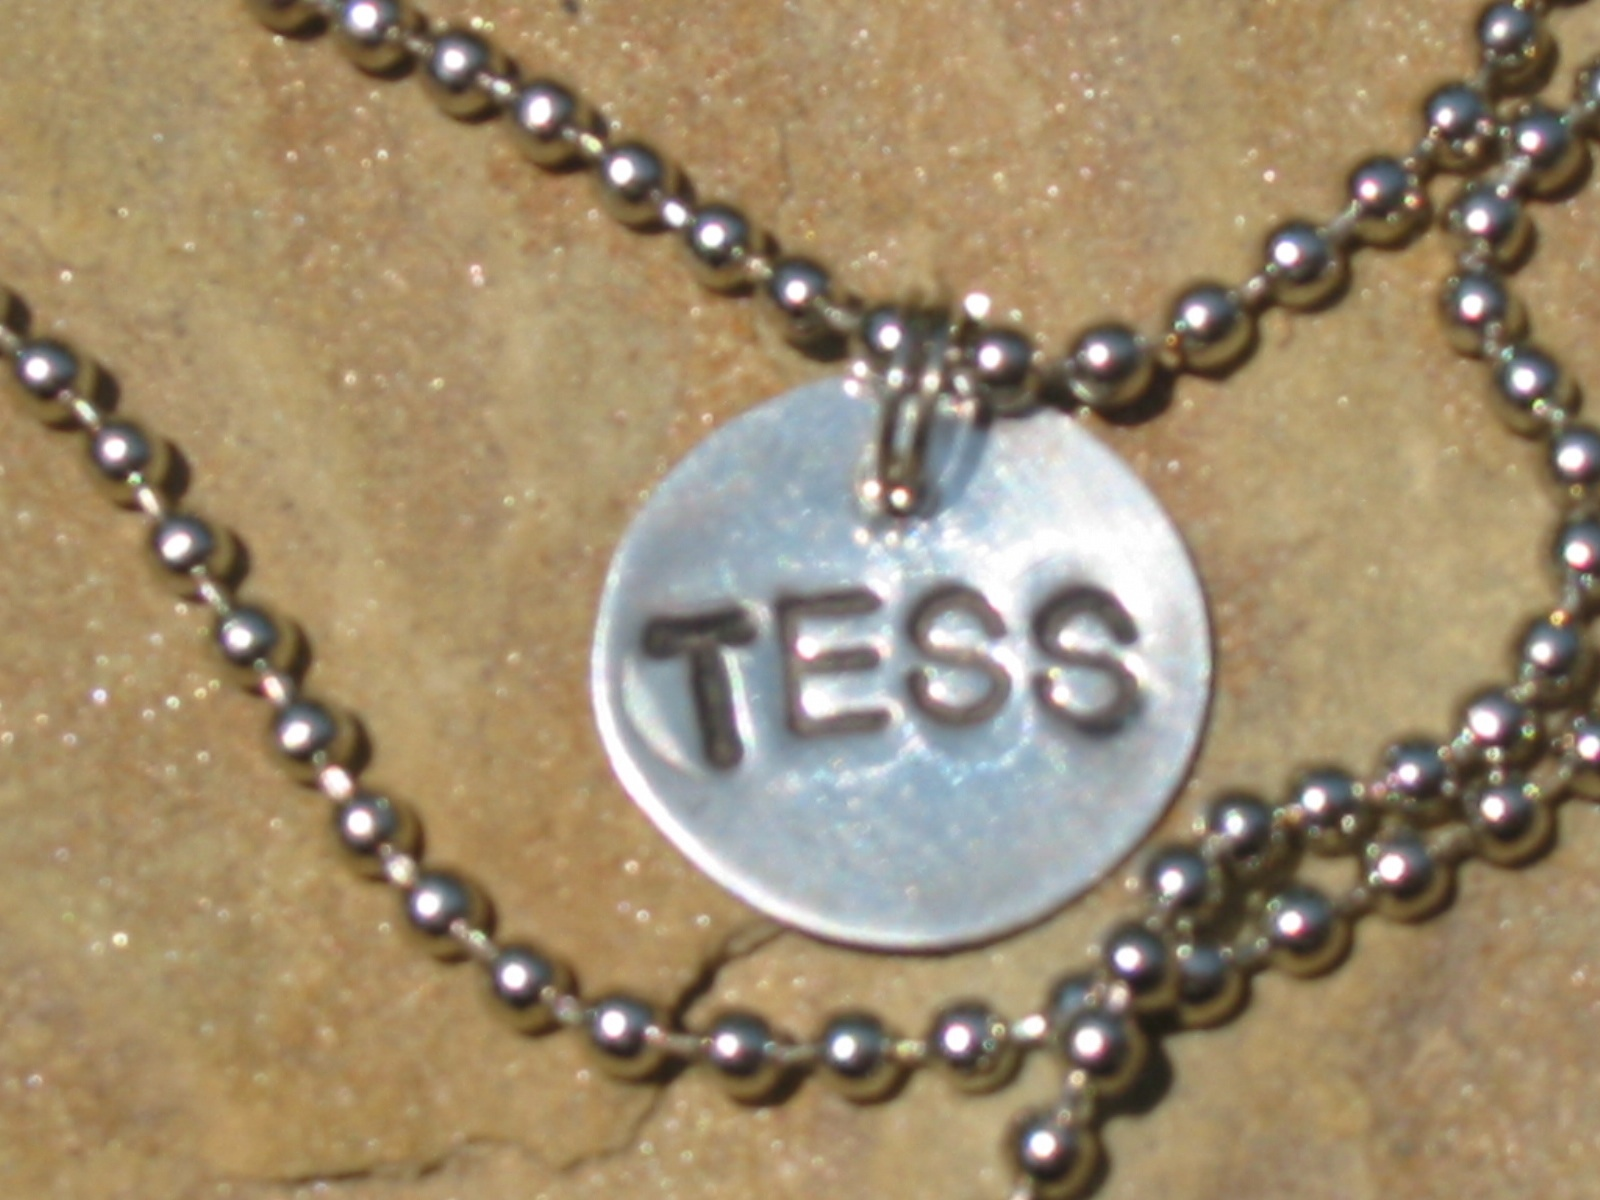 The Tess Necklace